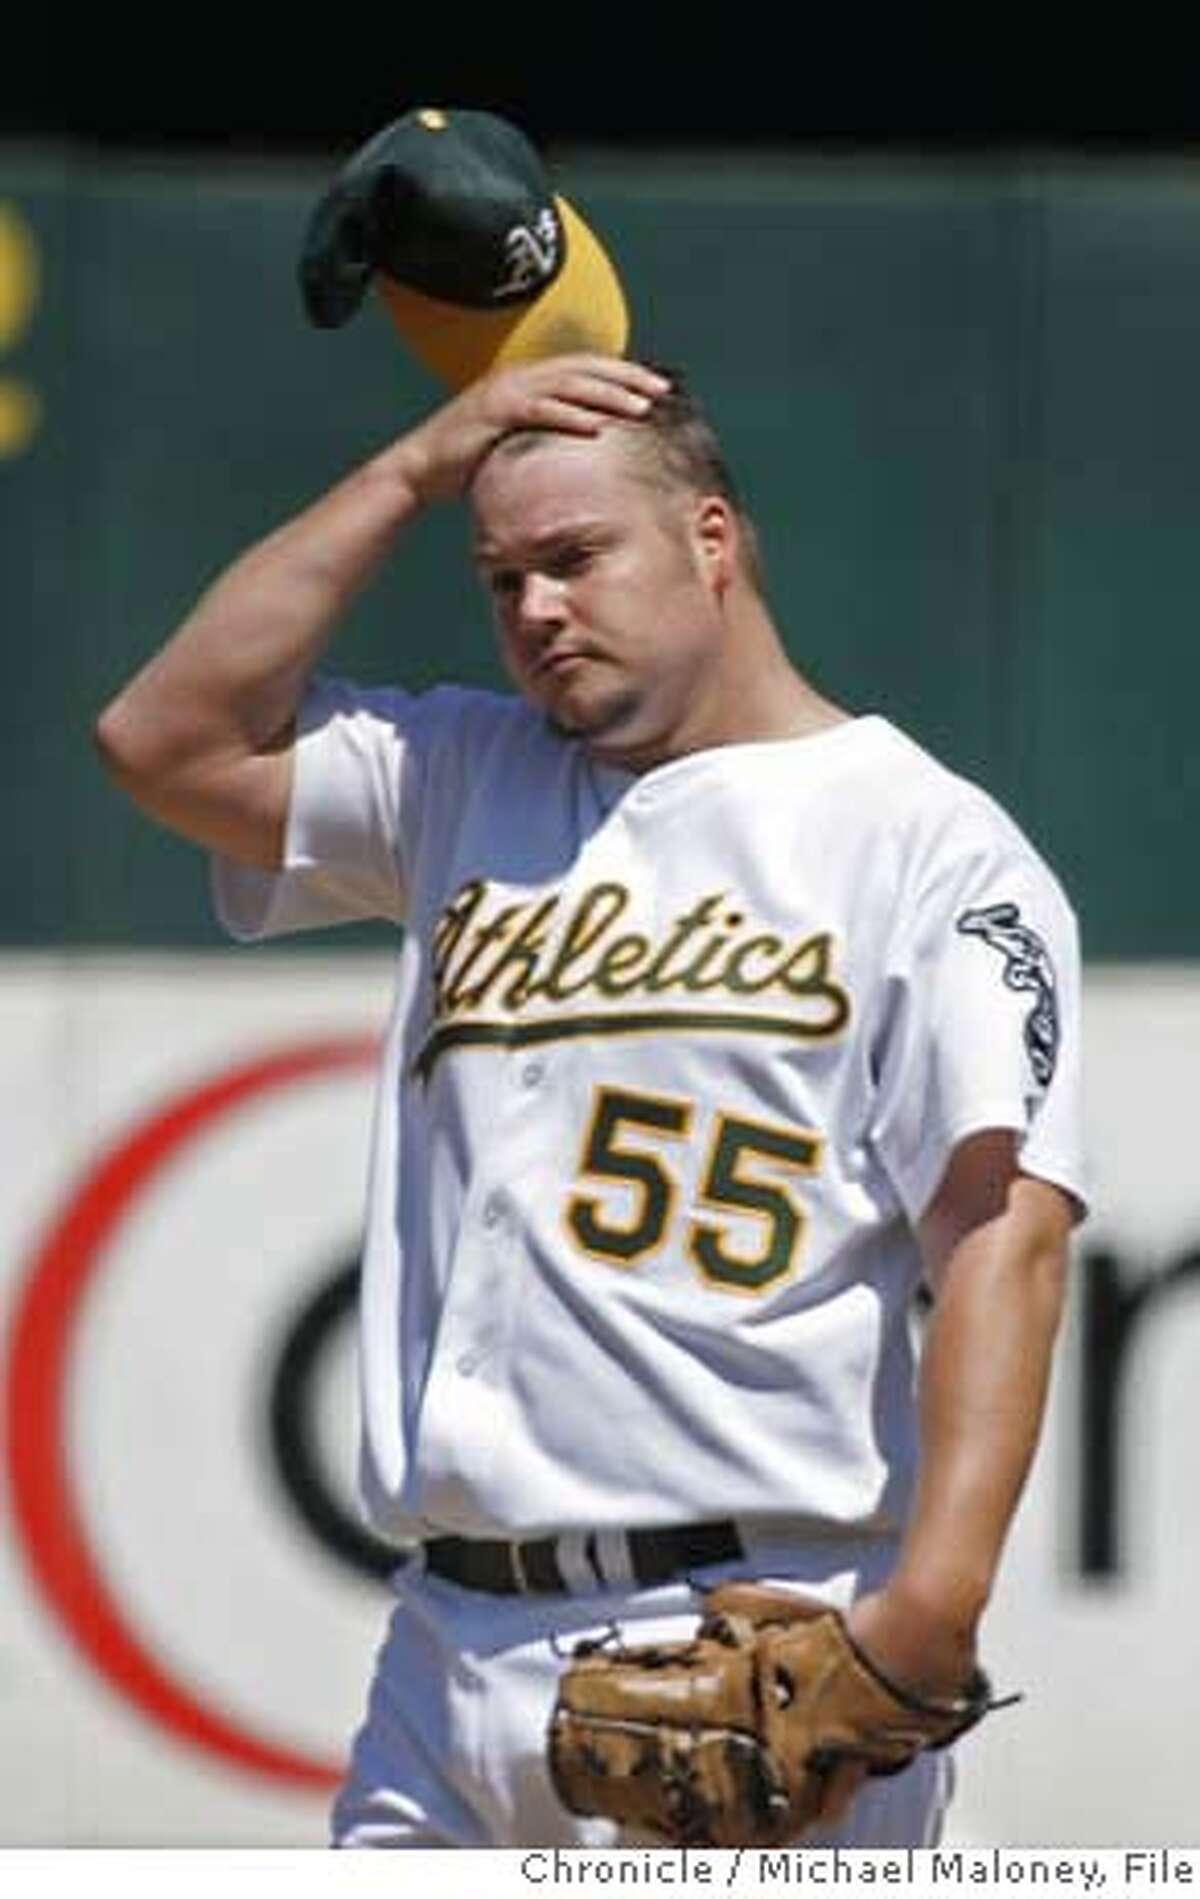 Starting pitcher Joe Blanton was frustrated in a tough 3rd inning. Oakland Athletics vs Texas Rangers at McAfee Coliseum. A's won 9-6. Photo by Michael Maloney / San Francisco Chronicle on 9/6/06 in Oakland,CA MANDATORY CREDIT FOR PHOTOG AND SF CHRONICLE/ -MAGS OUT